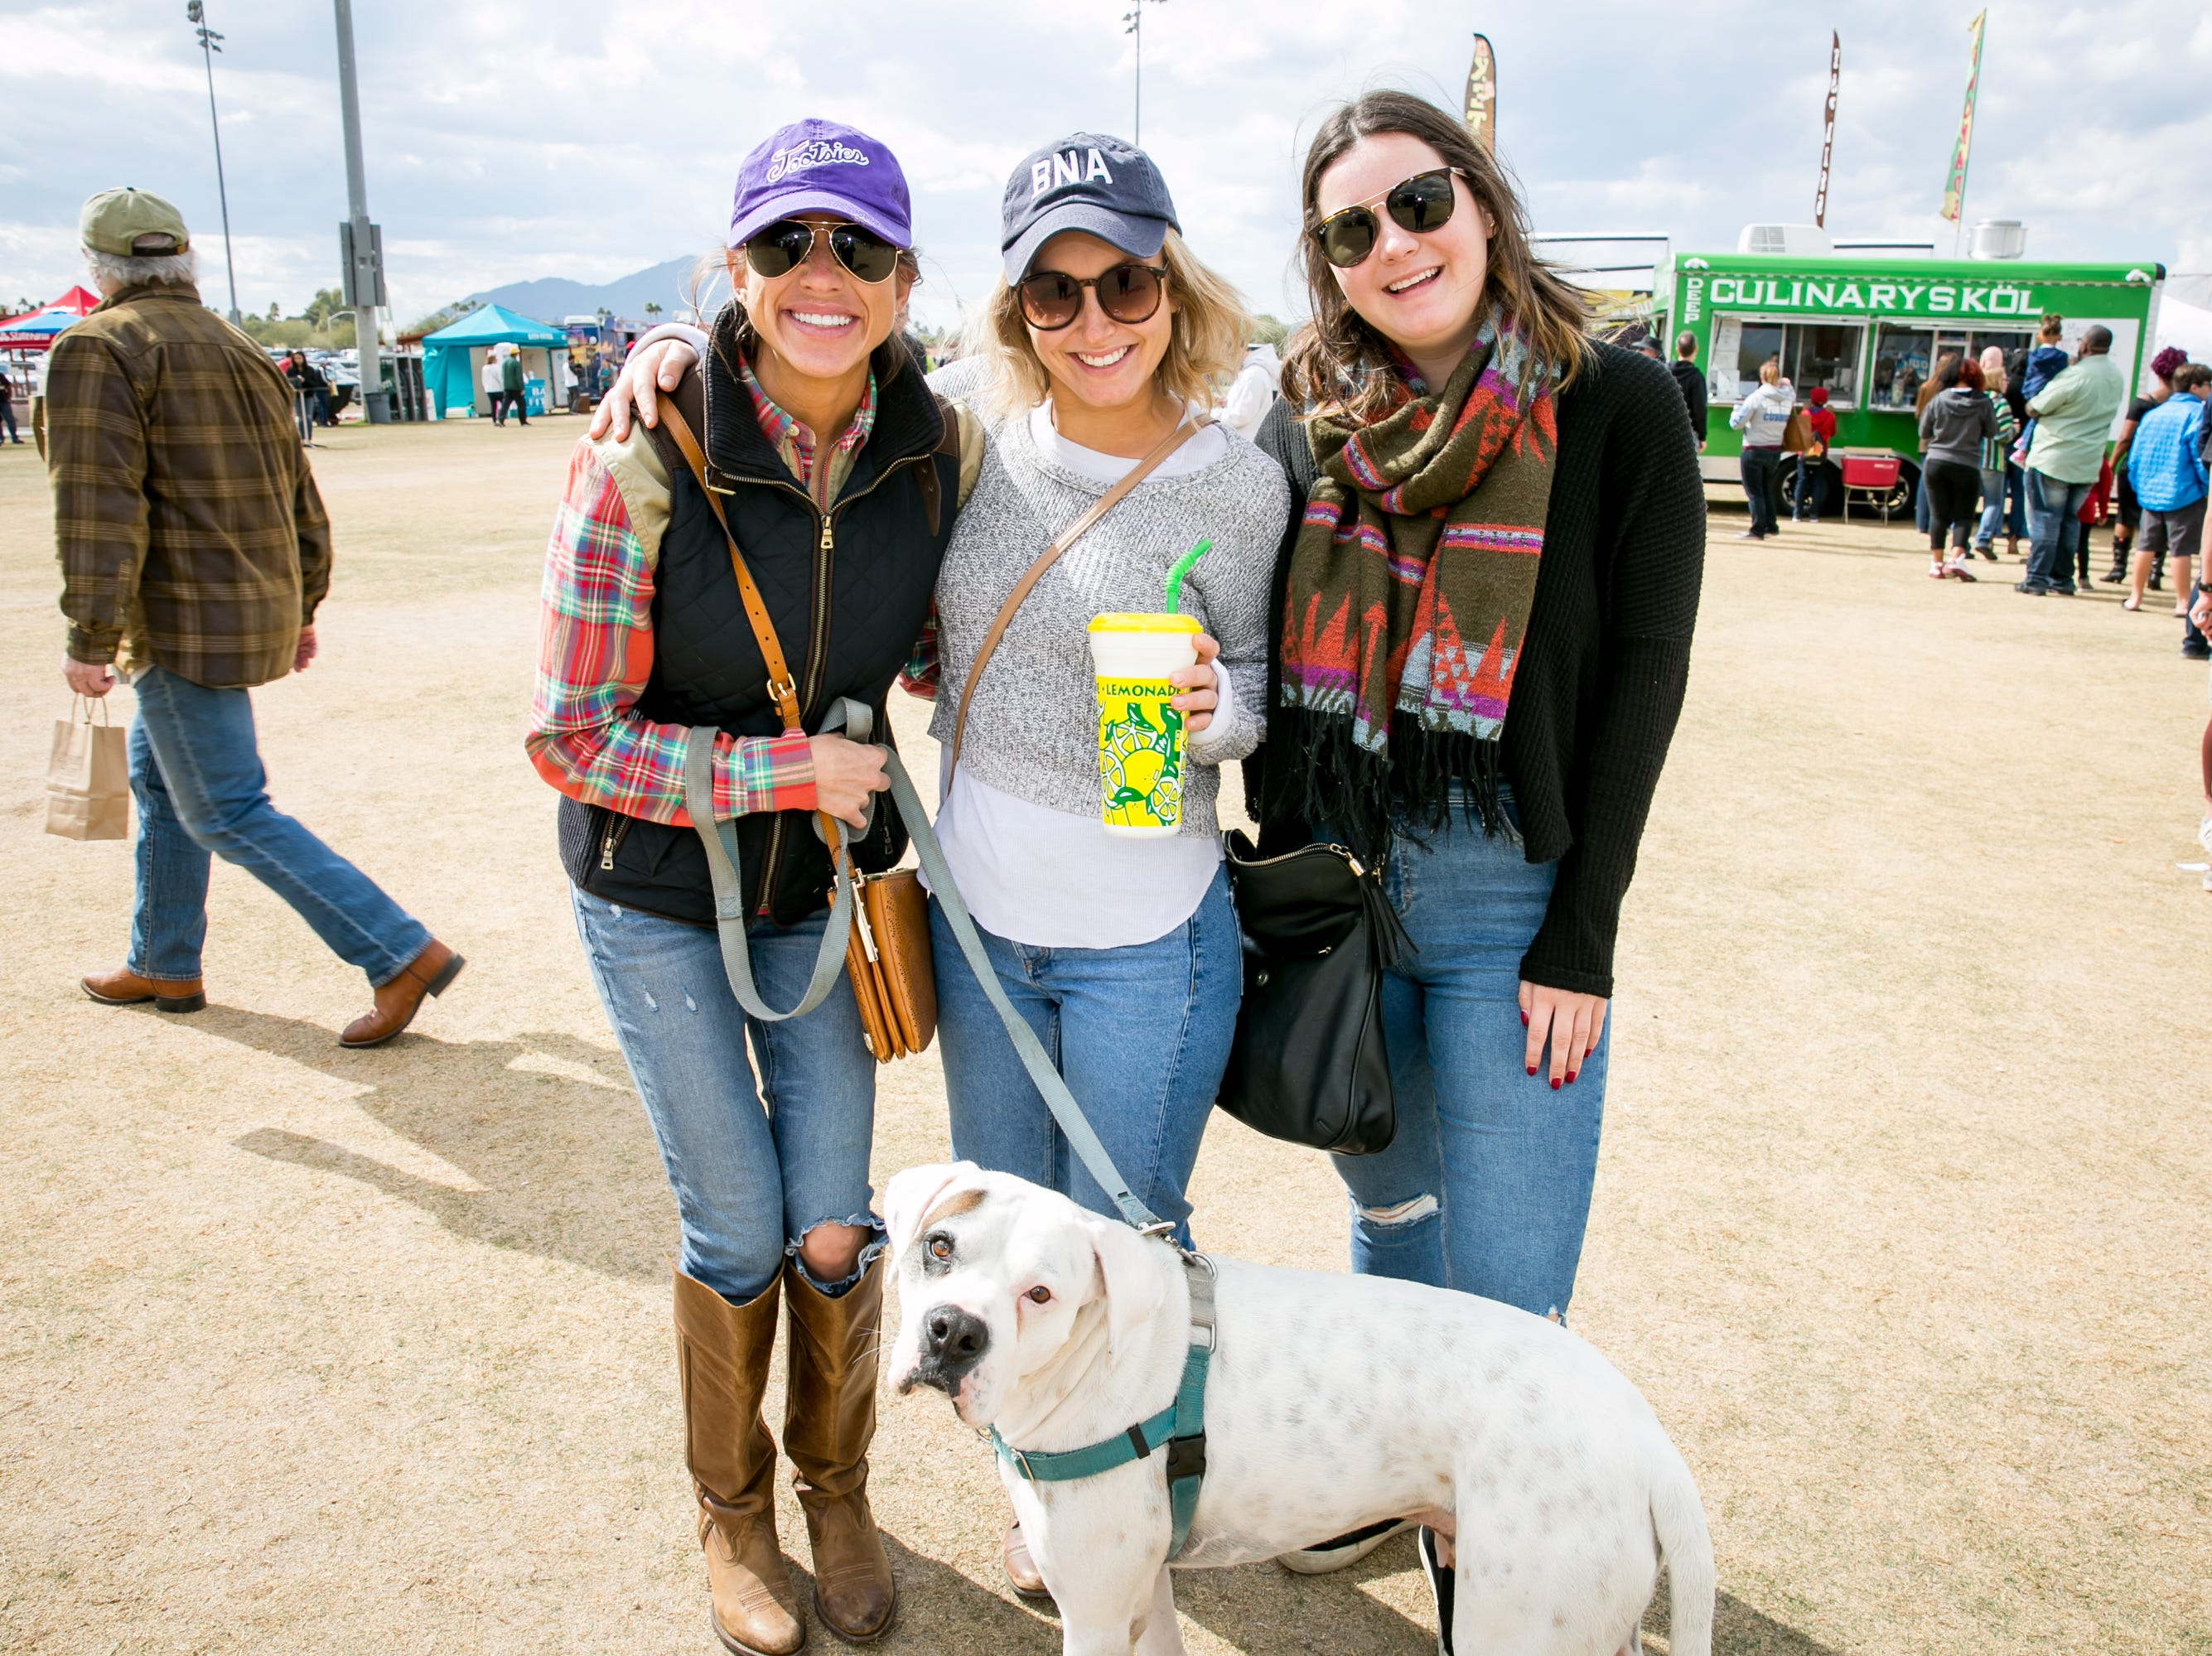 Vinny the dog also had a great time during the Street Eats Food Truck Festival at Salt River Fields near Scottsdale on Feb. 17, 2019.